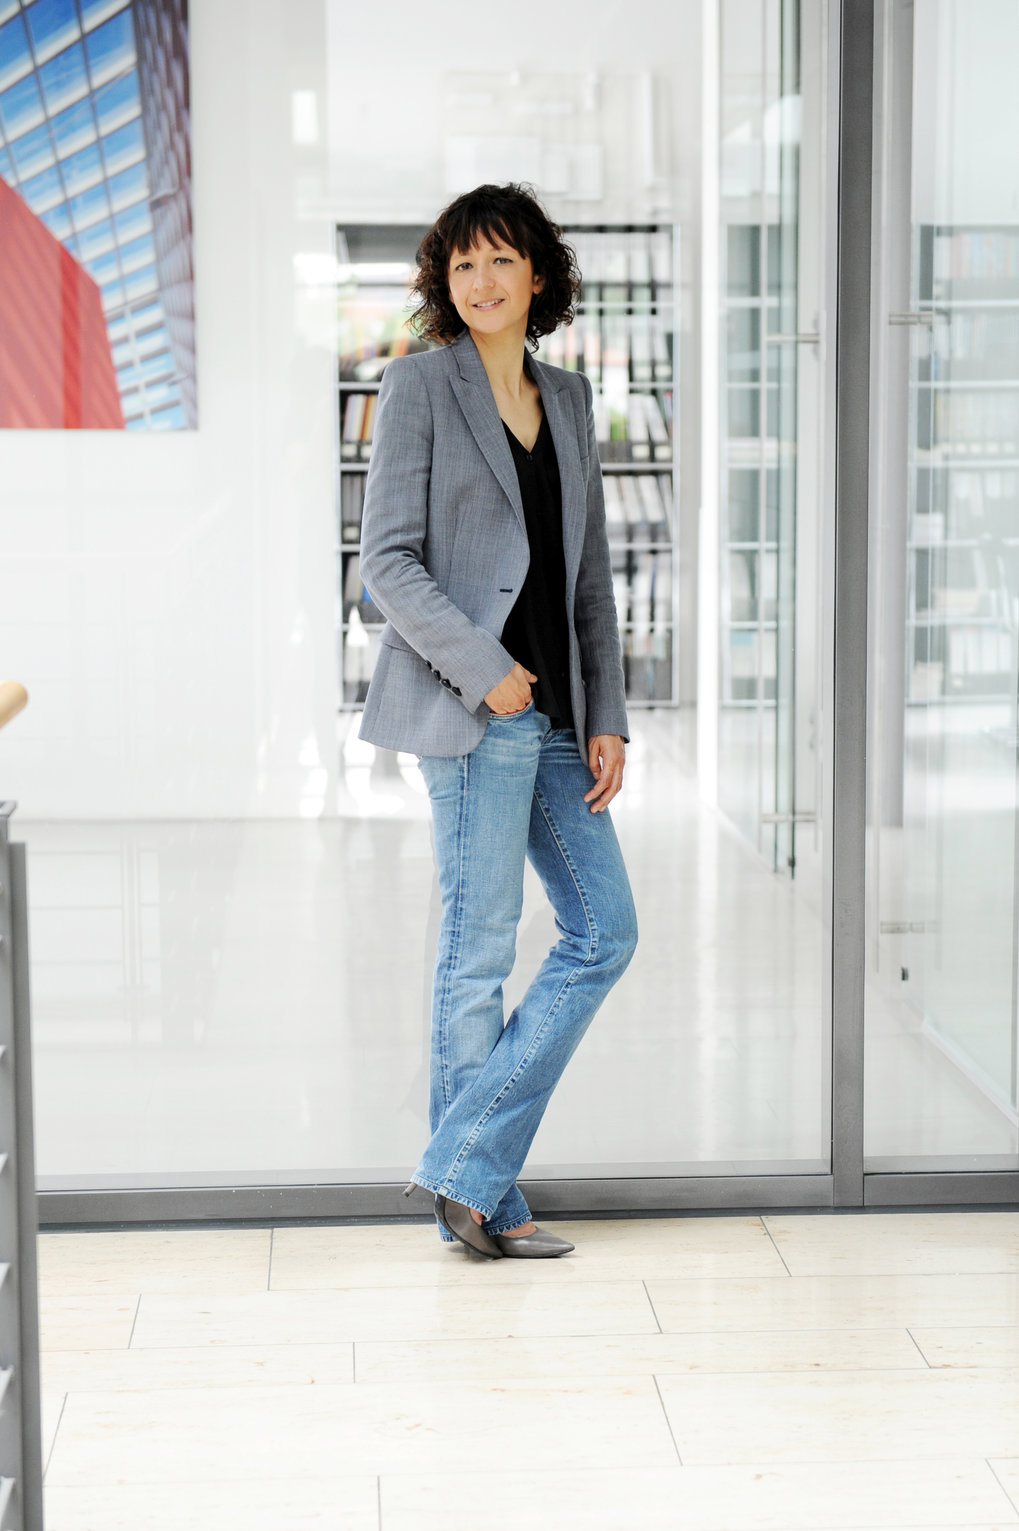 Finally here: Emmanuelle Charpentier moved to the Berlin-based Max Planck Institute for Infection Biology in October 2015. Her objective was to begin